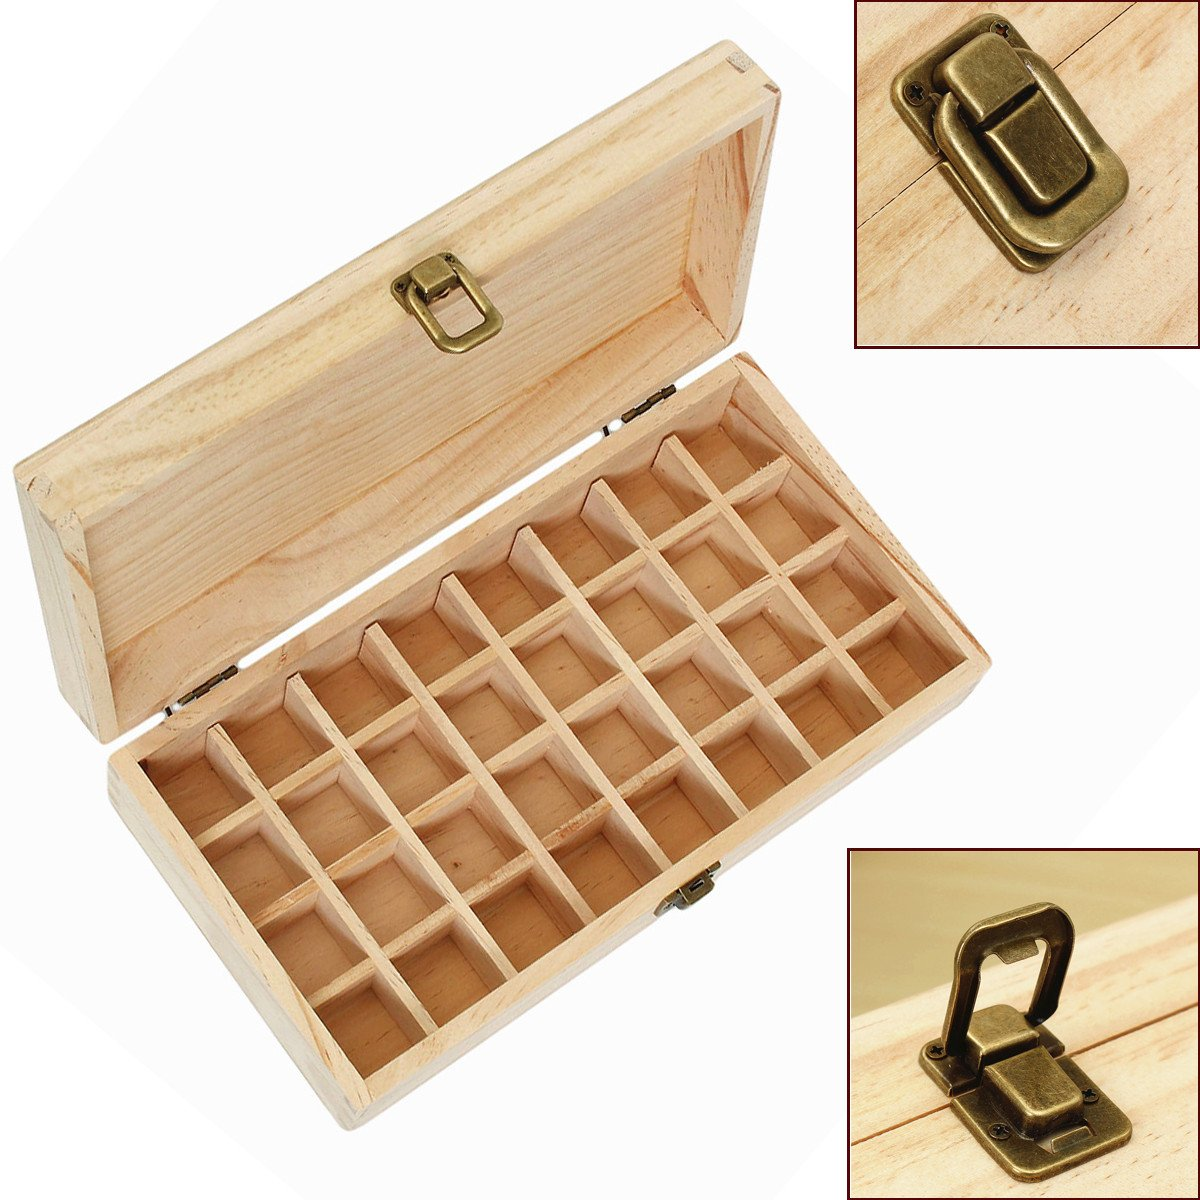 Essential Oil Wooden Storage Box, 32/74 Compartments Container Holder Display Case of 5-15 ml Essential Oil Bottles Case For Travel & Presentations (74 Bottle) ZJchao